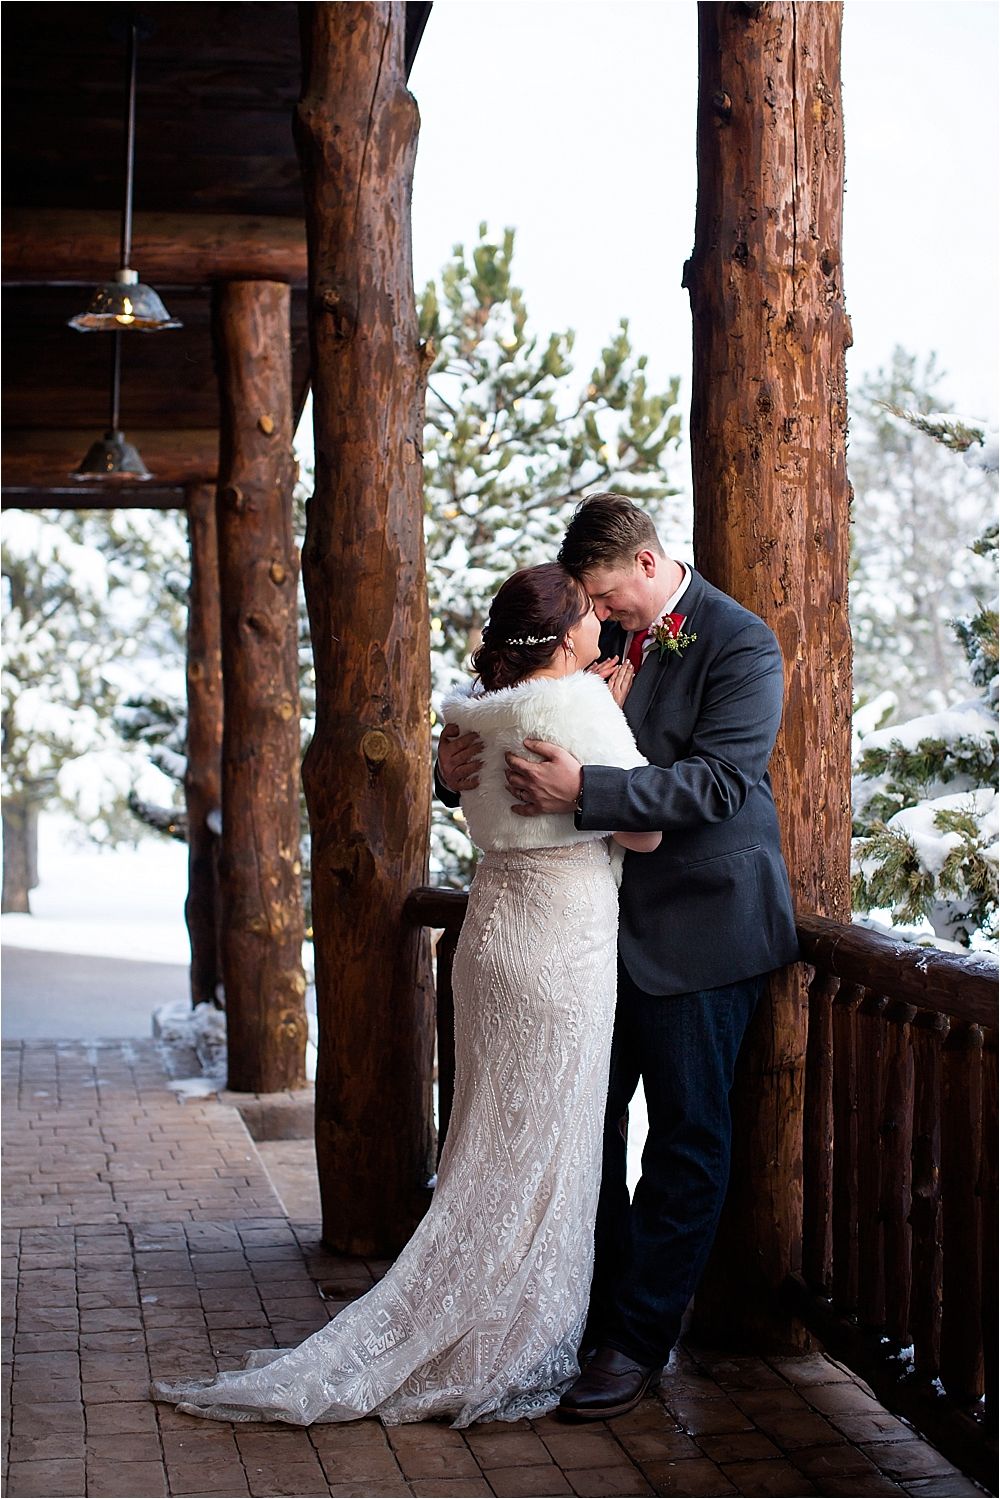 Kristin + Weston's Spruce Mountain Wedding_0033.jpg